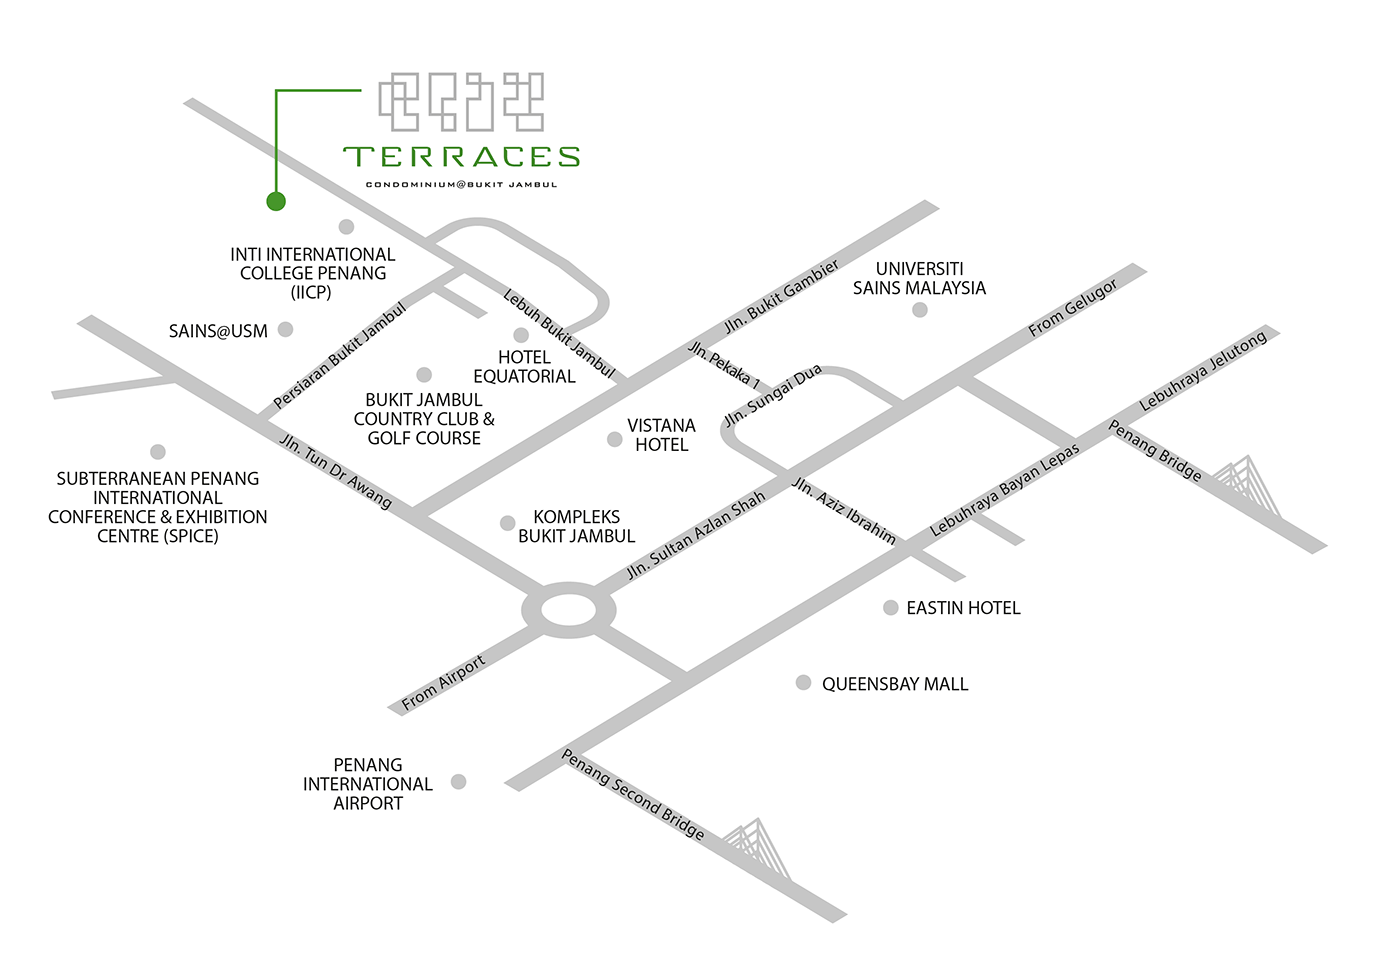 The Terraces Condominium location map